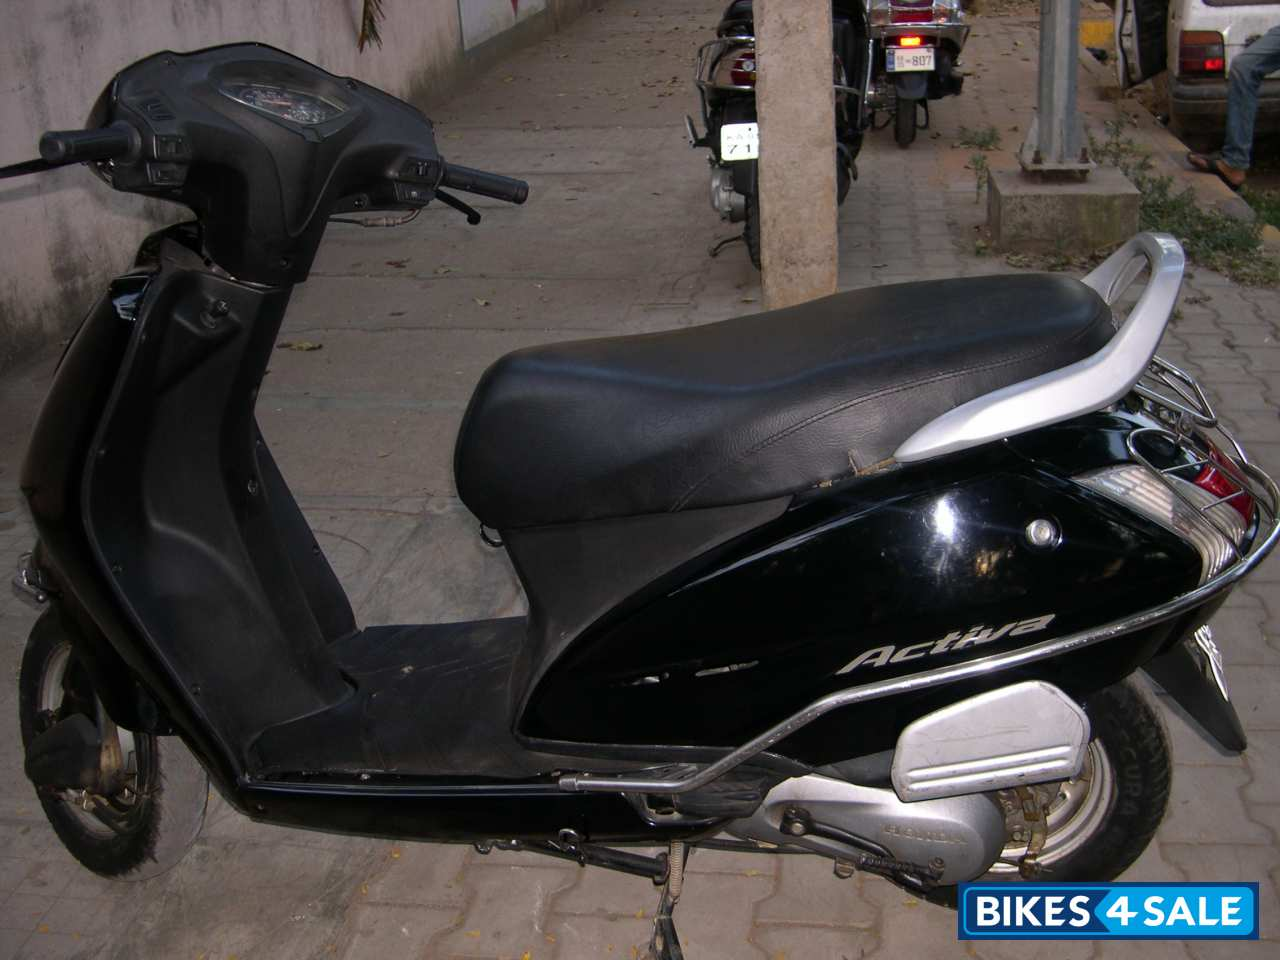 Black Honda Activa For Sale In Bangalore  A Honda Activa Is For Sale 110 Cc Dlx Scooter Jet